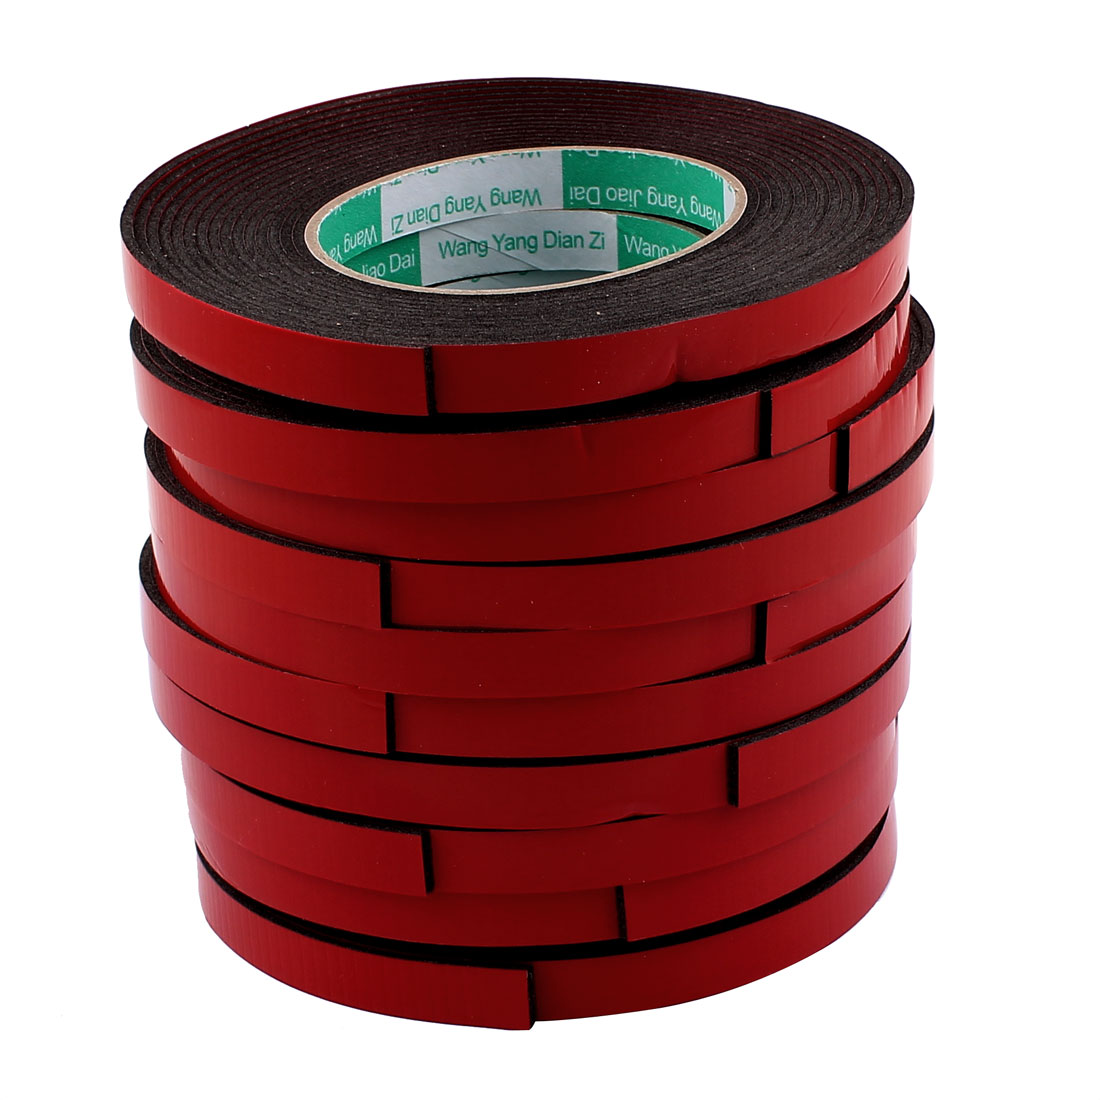 10 Pcs Black Strong Double Sided Adhesive Tape Sponge Tape 12MM Width 5M Long